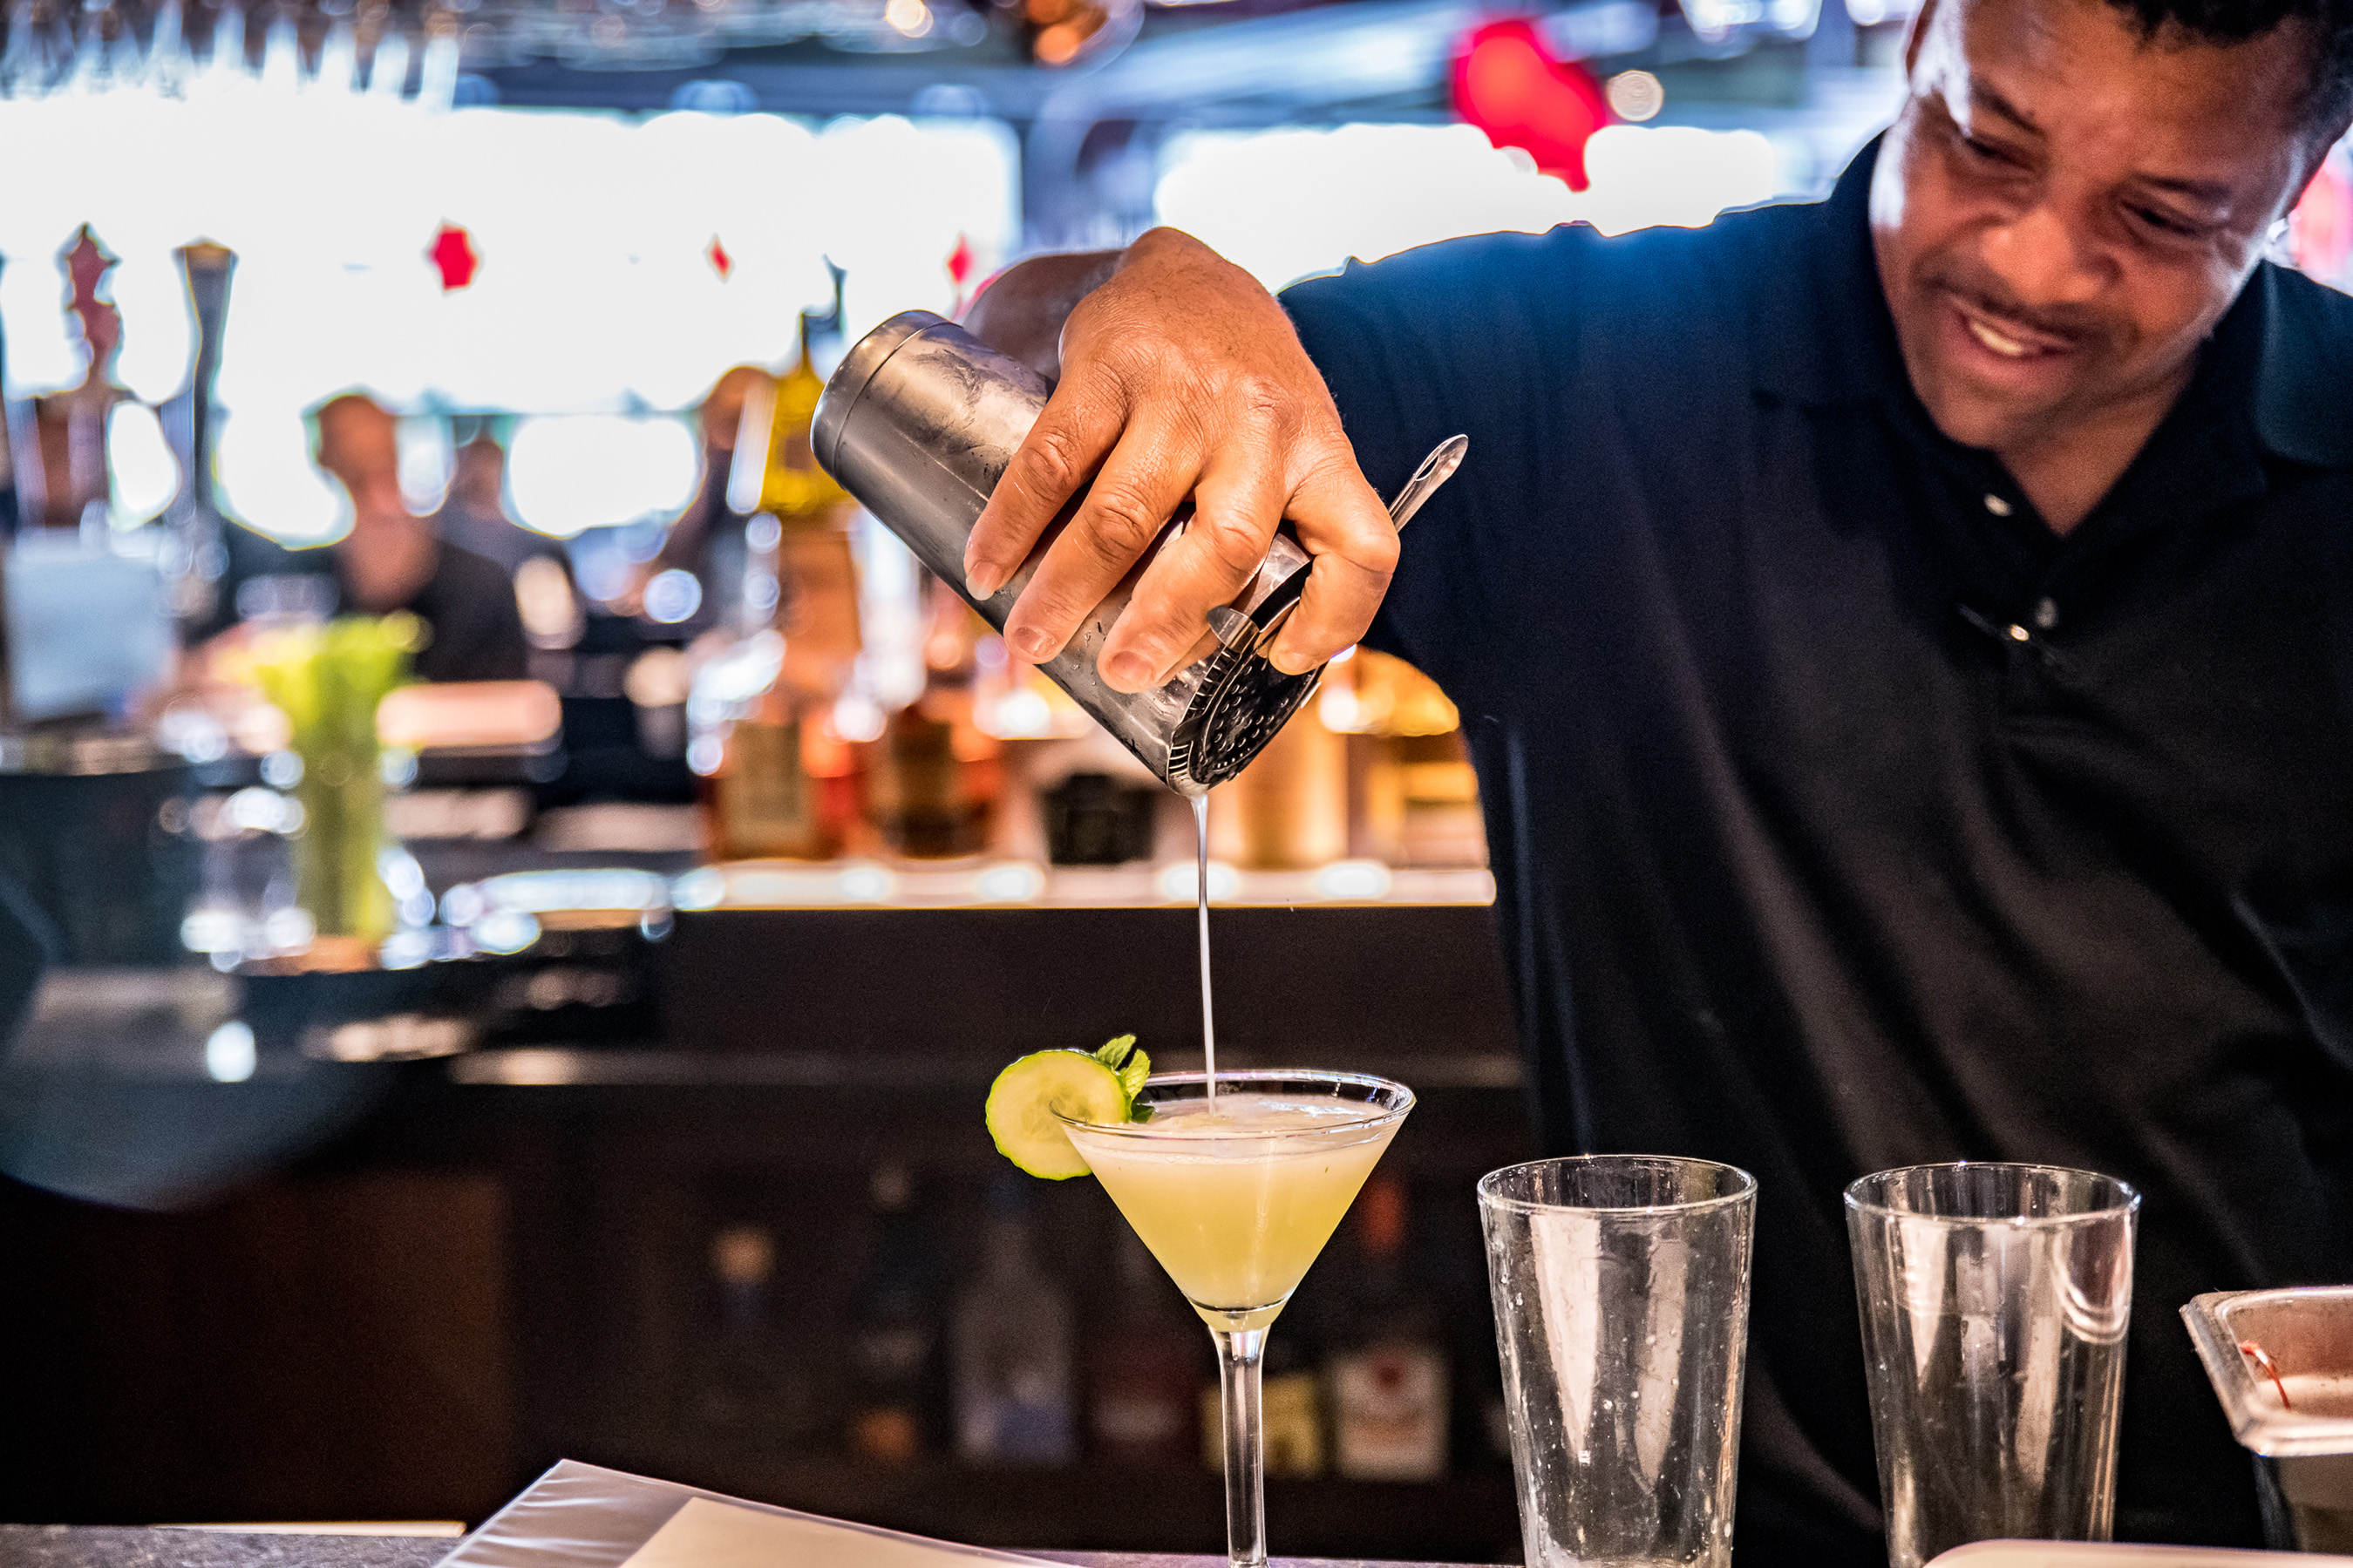 This Bar Louie bartender completes the finishing touch on one of their classic signature cocktails, the EFFEN Good martini. July 2019.